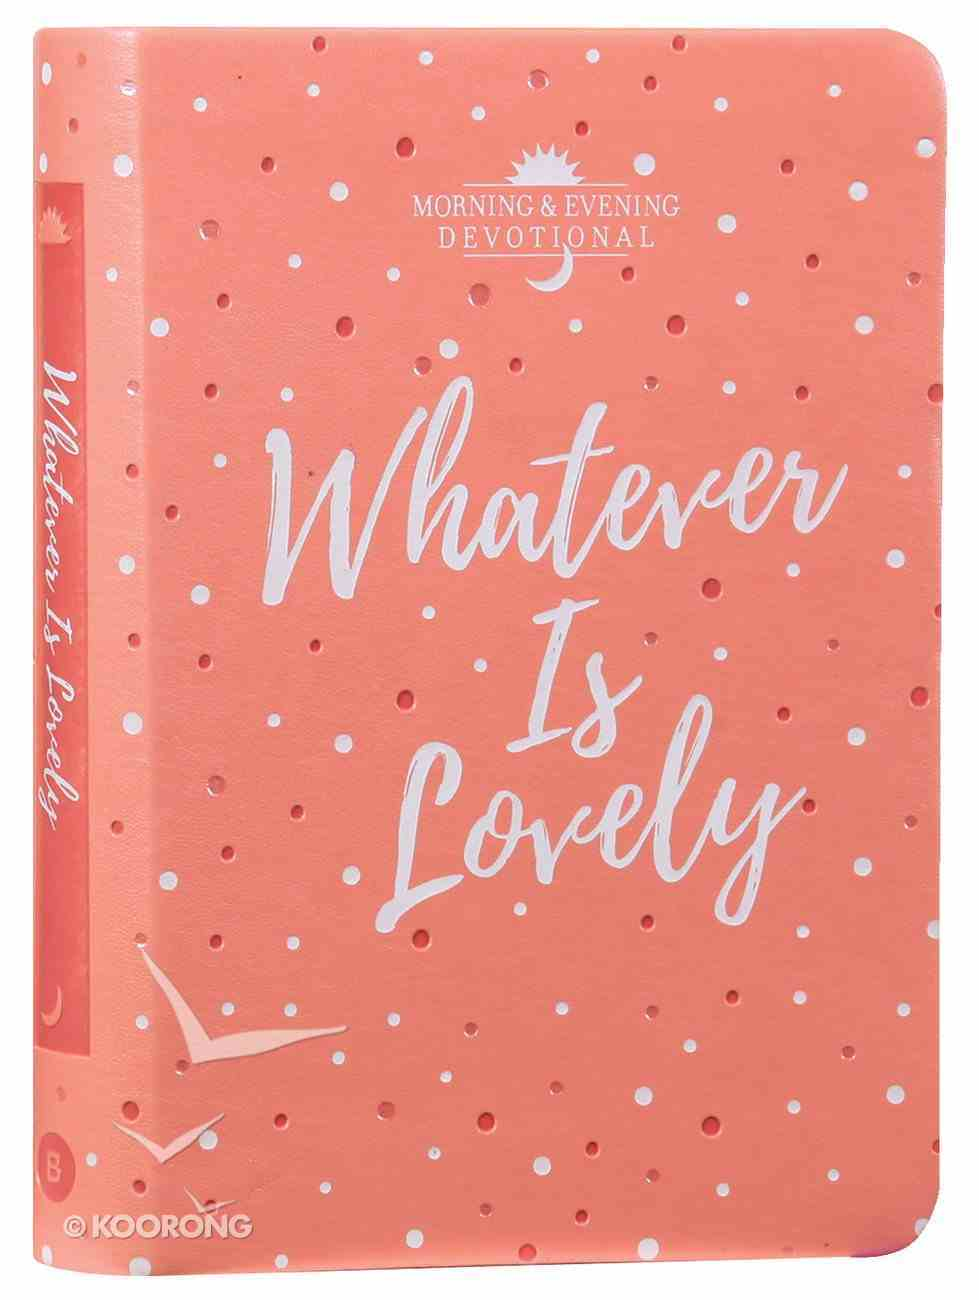 Whatever is Lovely: A Morning & Evening 90-Day Devotional Imitation Leather